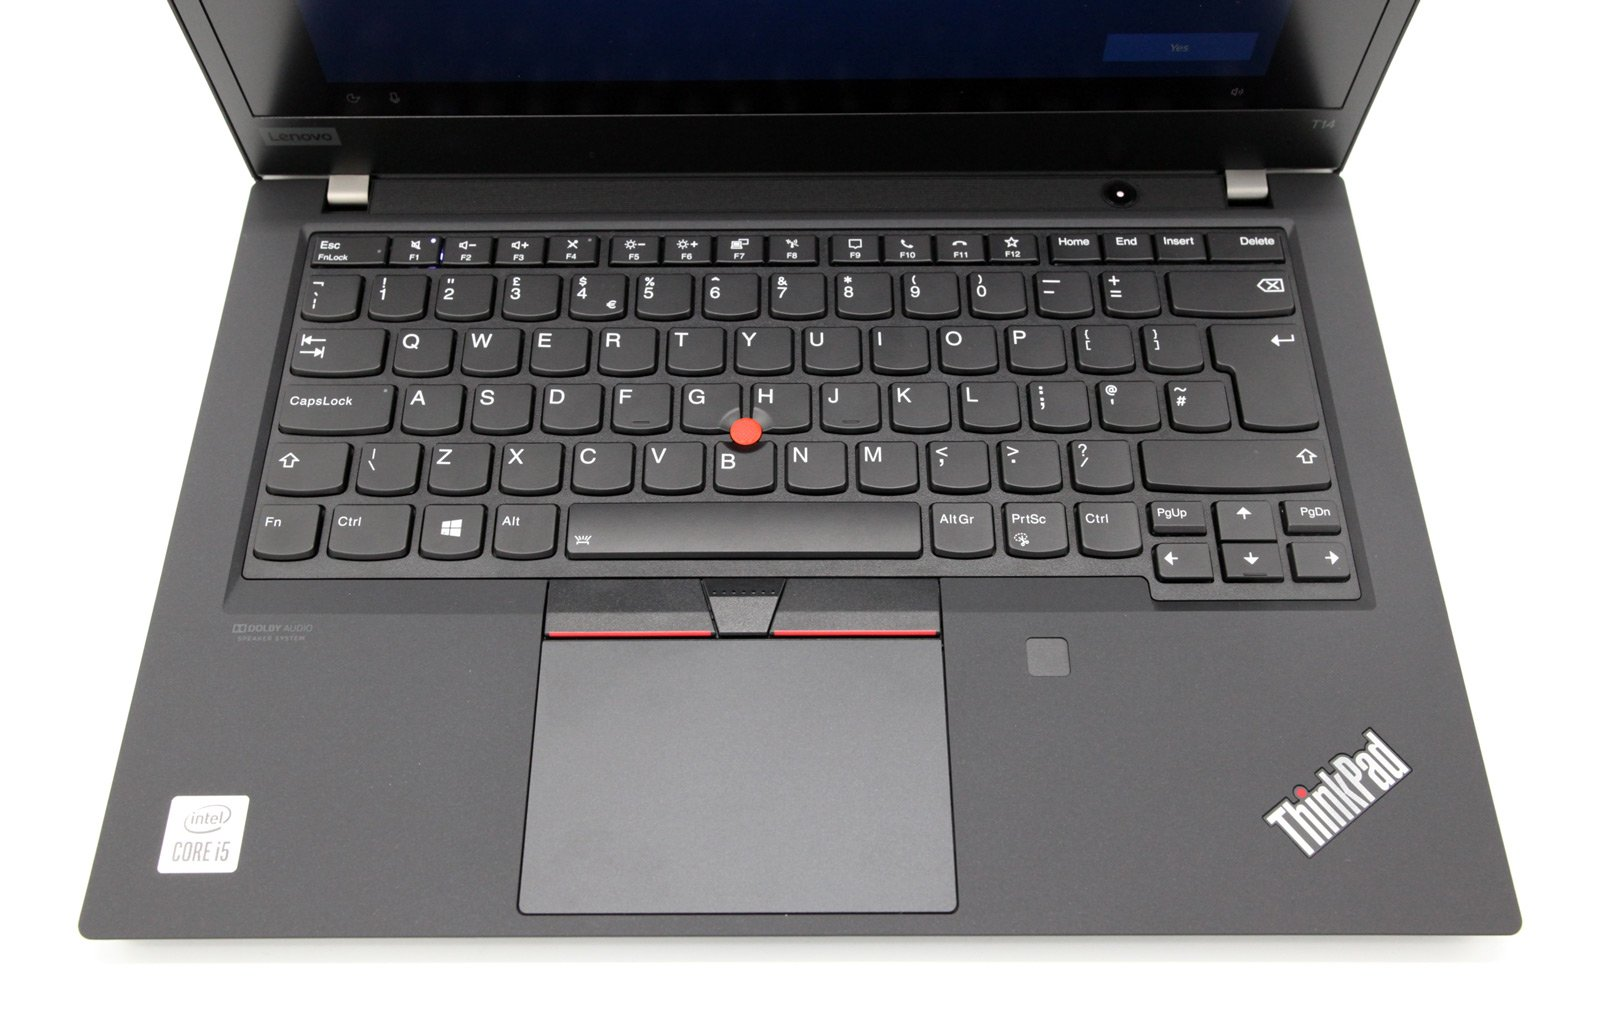 Lenovo ThinkPad T14 Gen 1 Laptop: i5-10210U, 256GB SSD, 8GB RAM, Warranty - CruiseTech